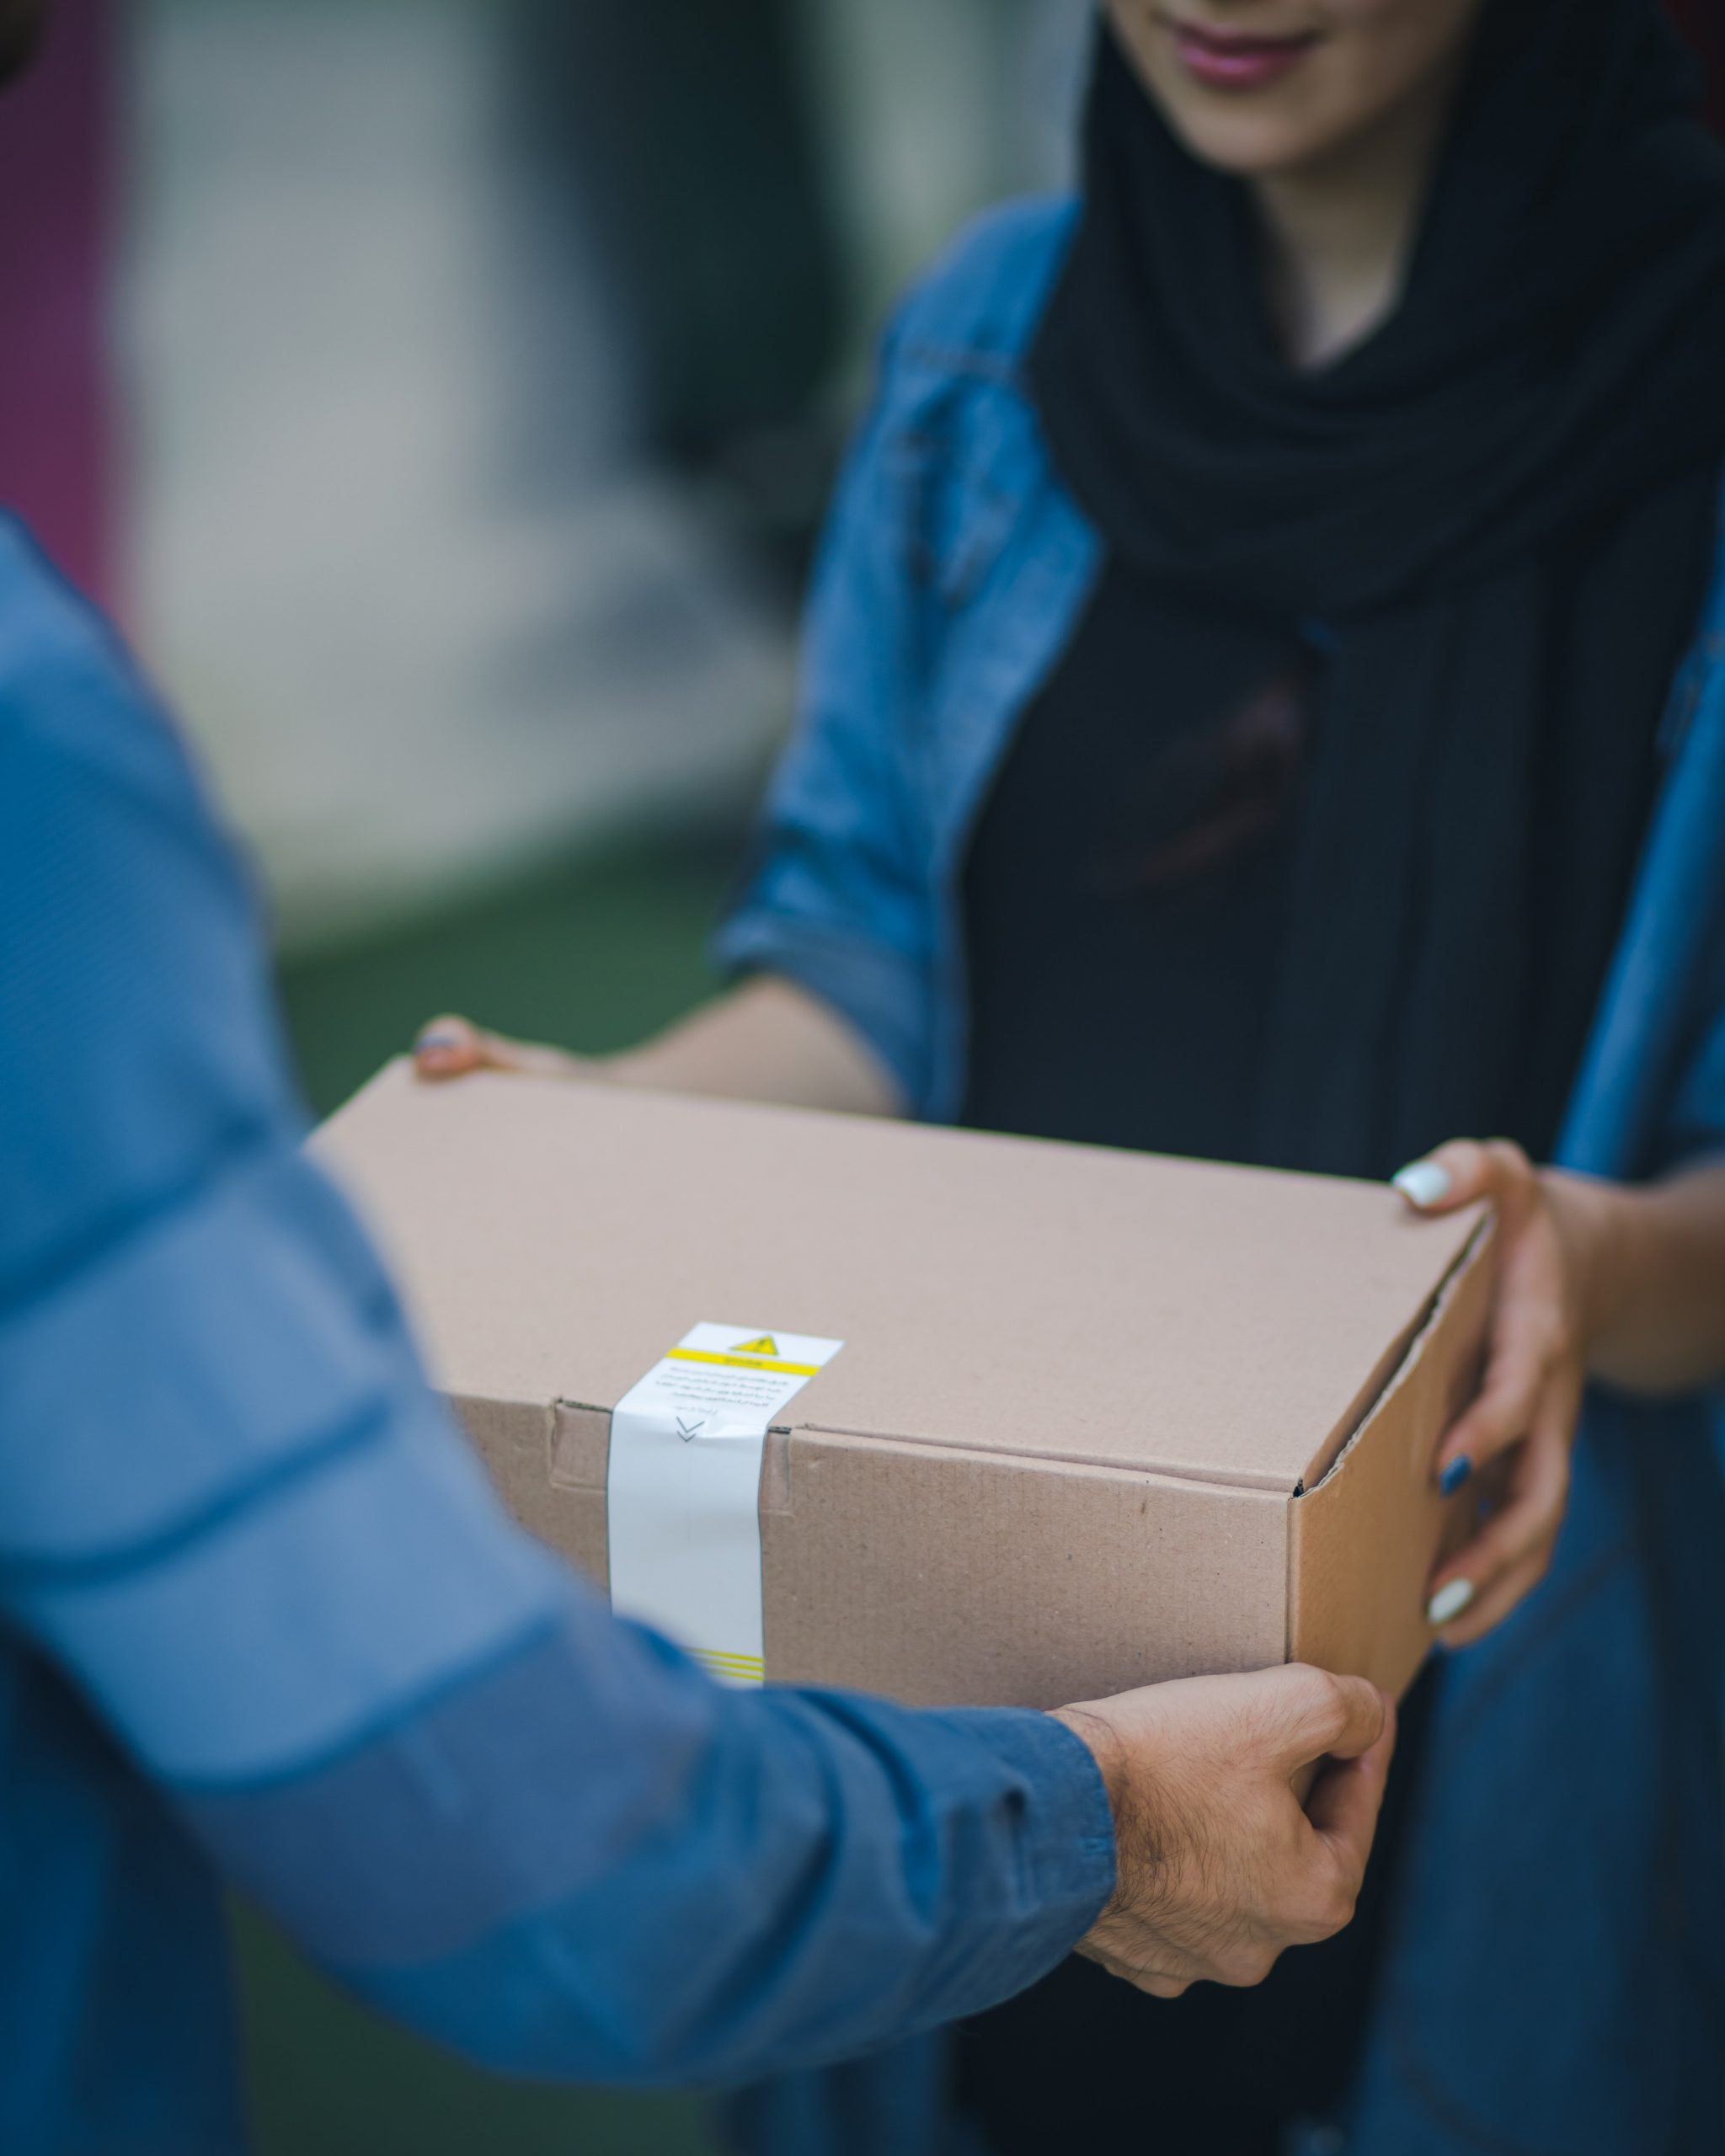 Benefits of owning a clothing subscription box